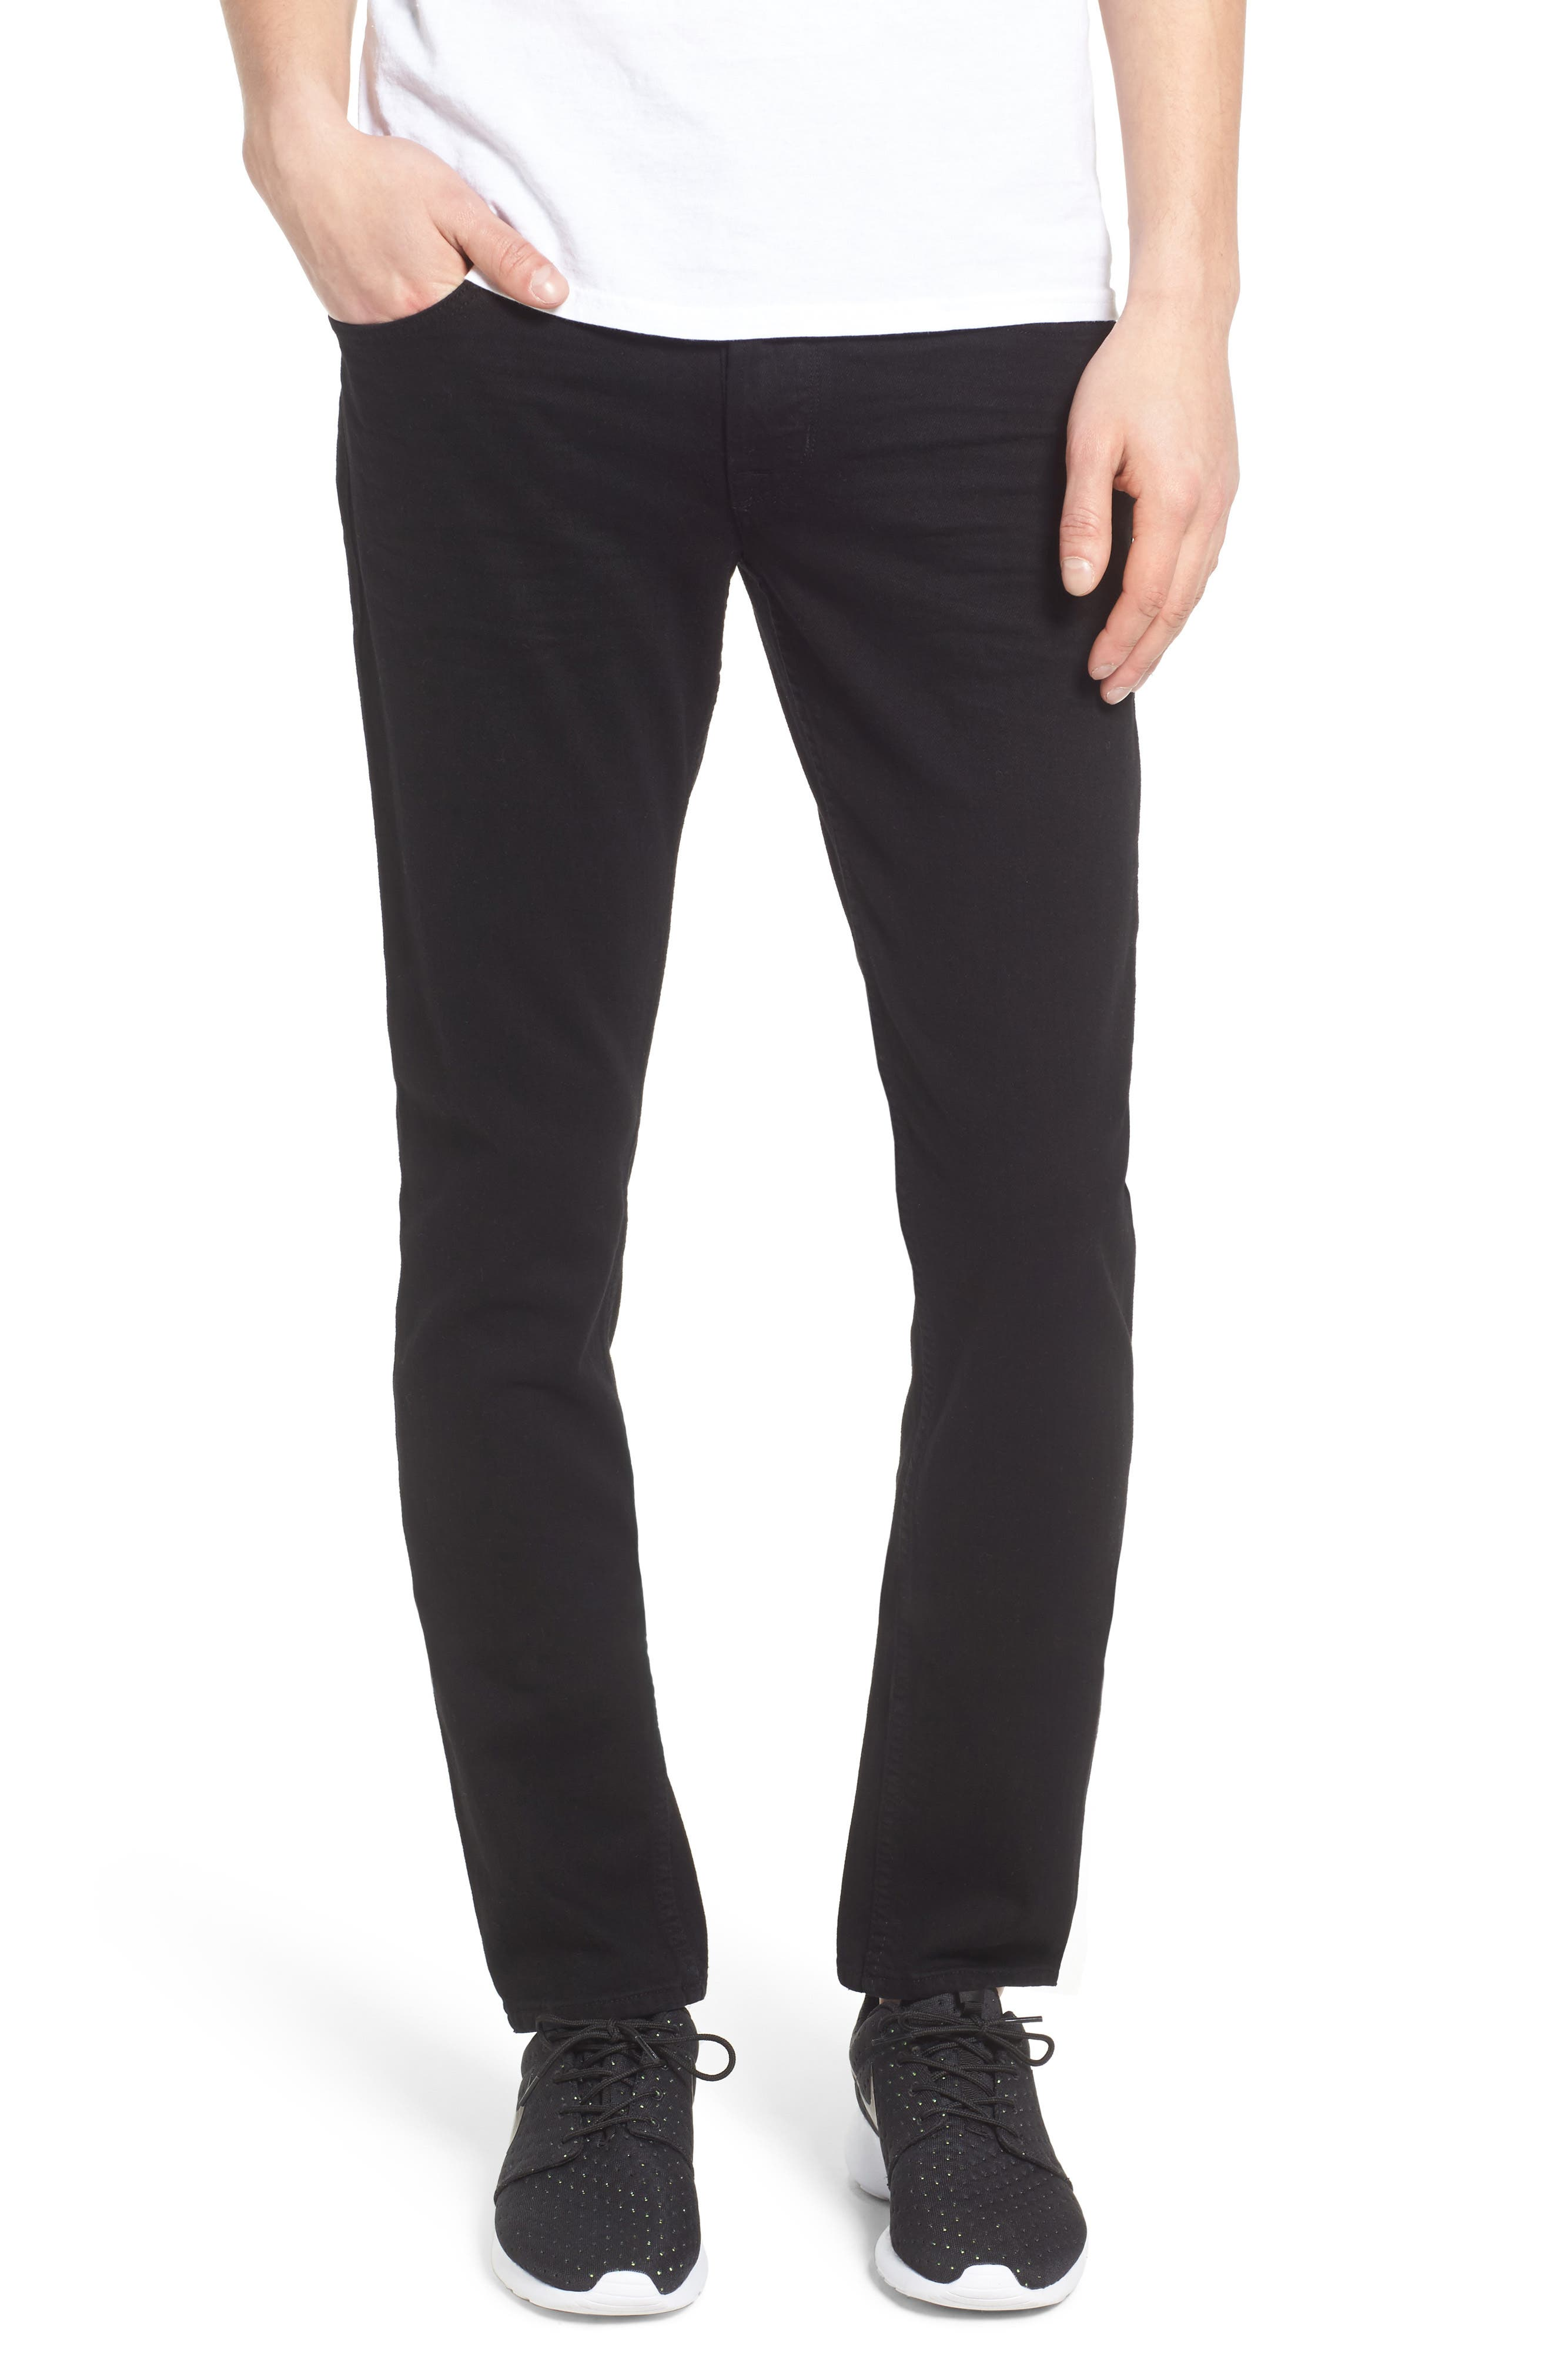 Axl Skinny Fit Jeans,                         Main,                         color, 002